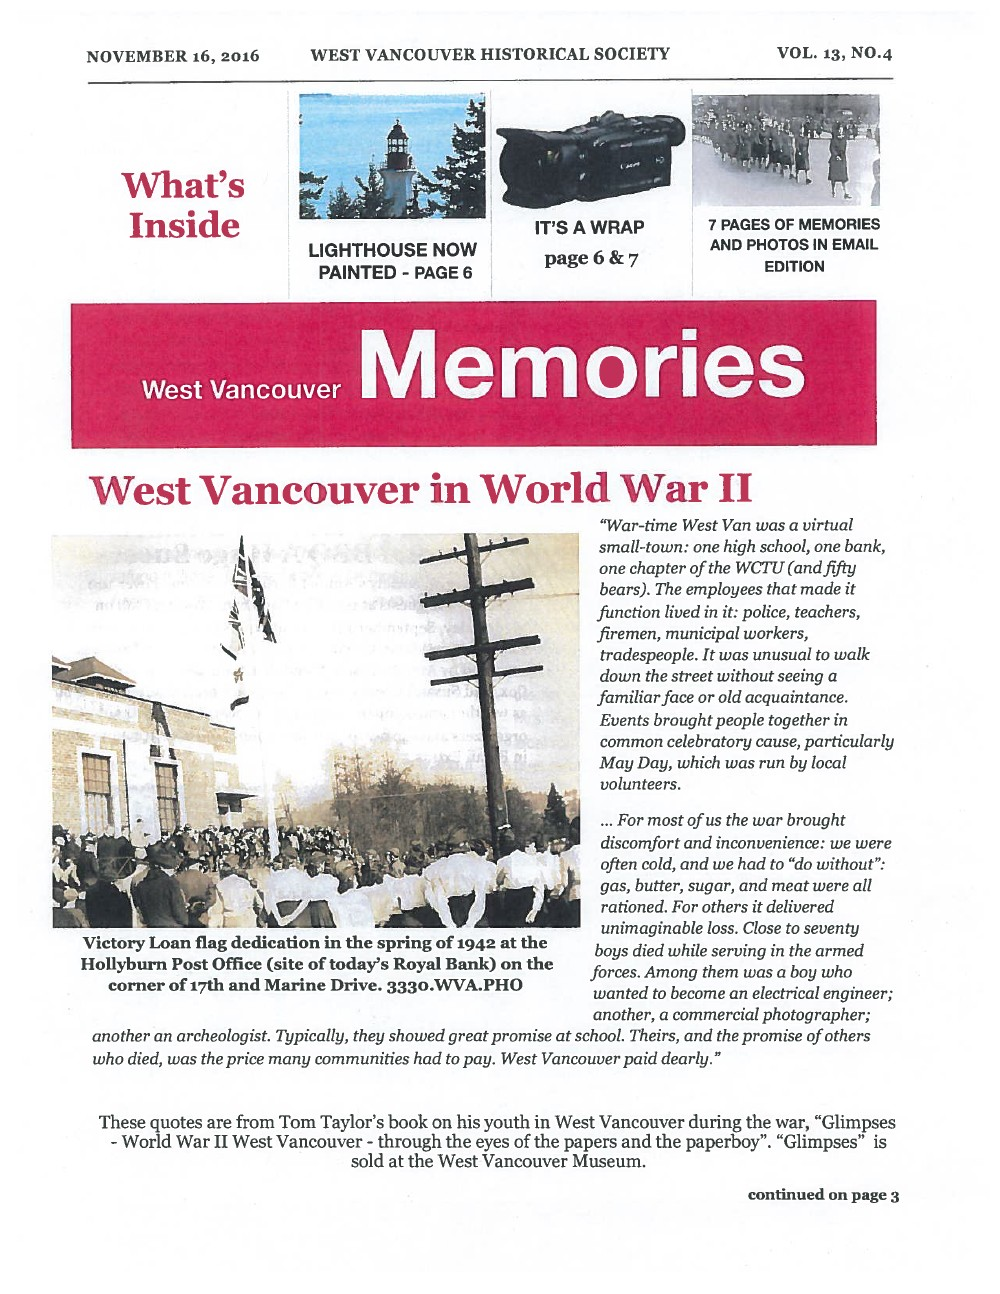 History-onics (West Vancouver, BC: West Vancouver Historical Society), November 16, 2016